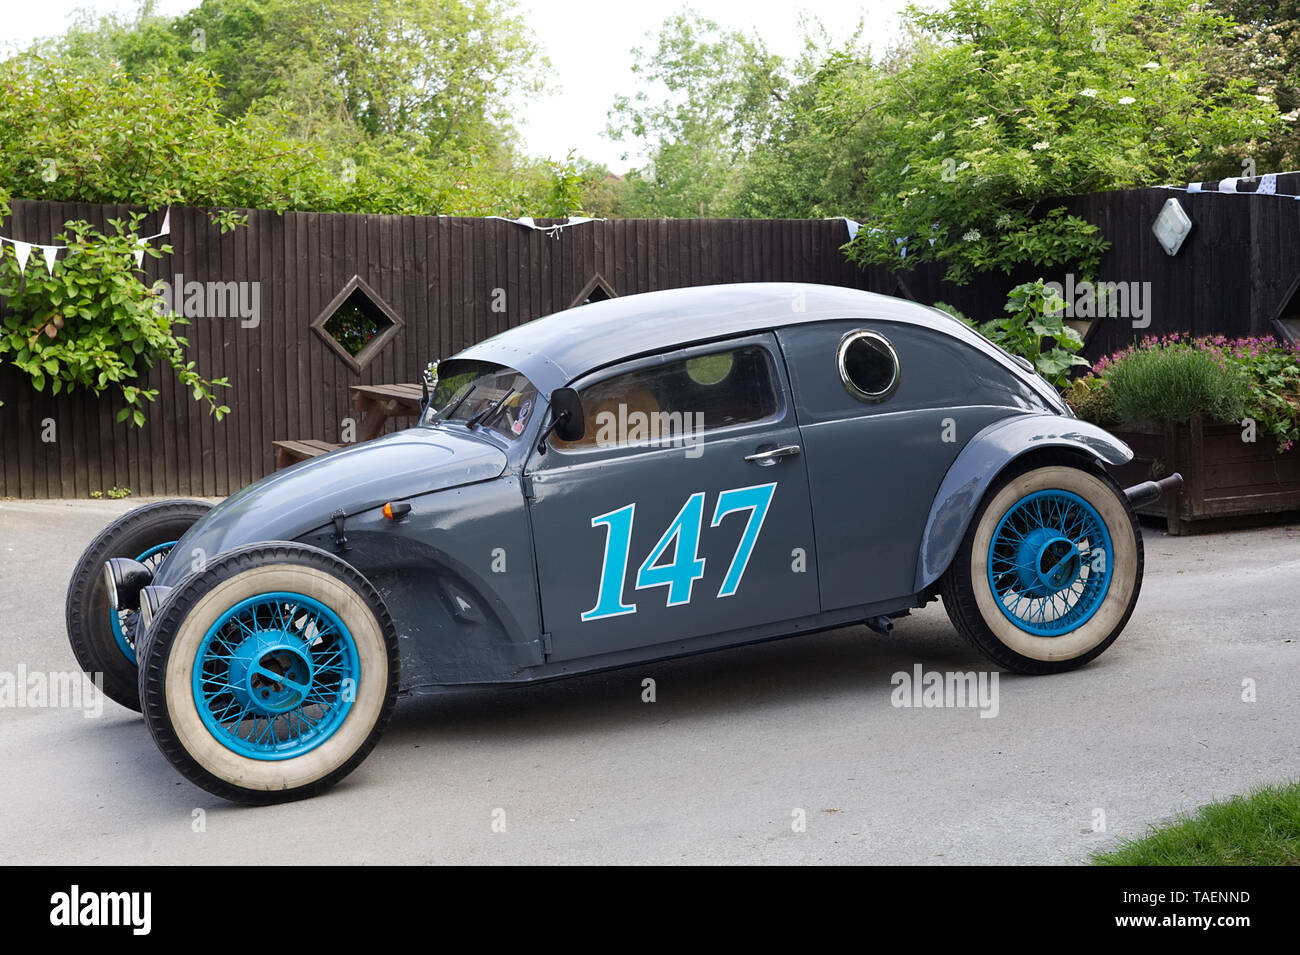 Beautifully finished Hot Rod Beetle at Avoncroft Air-cooled VW show - Stock Image